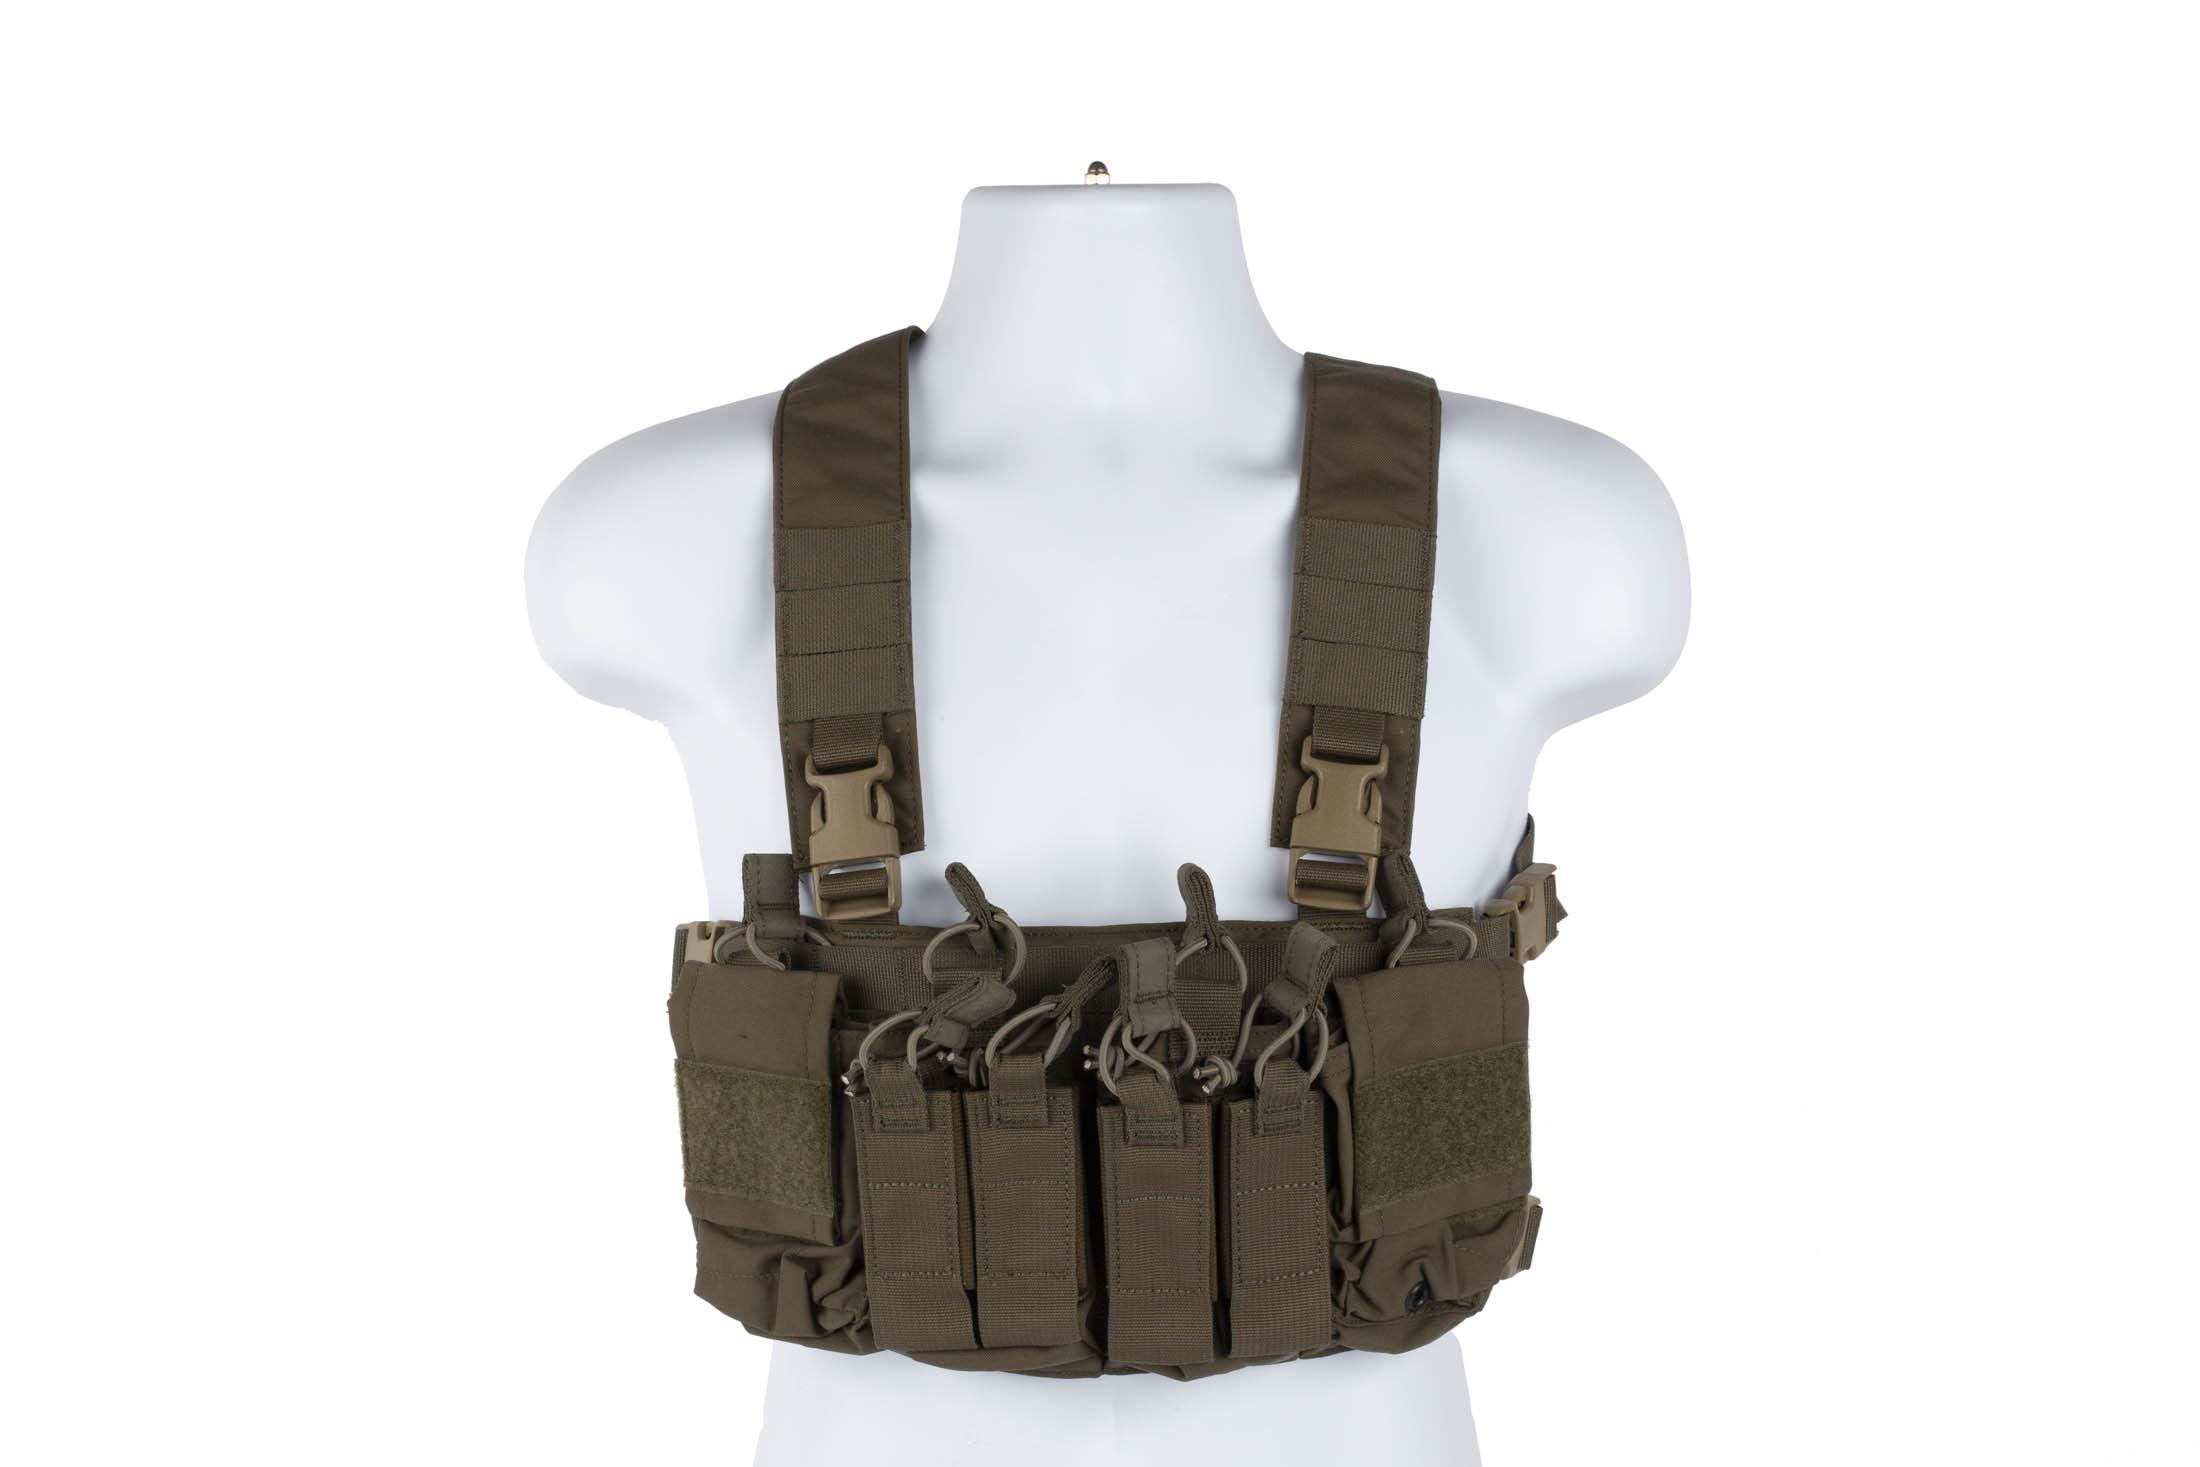 Haley Strategic D3CRX ranger green chest rig features a comfortable X-harness and secure velcro accessory attachment